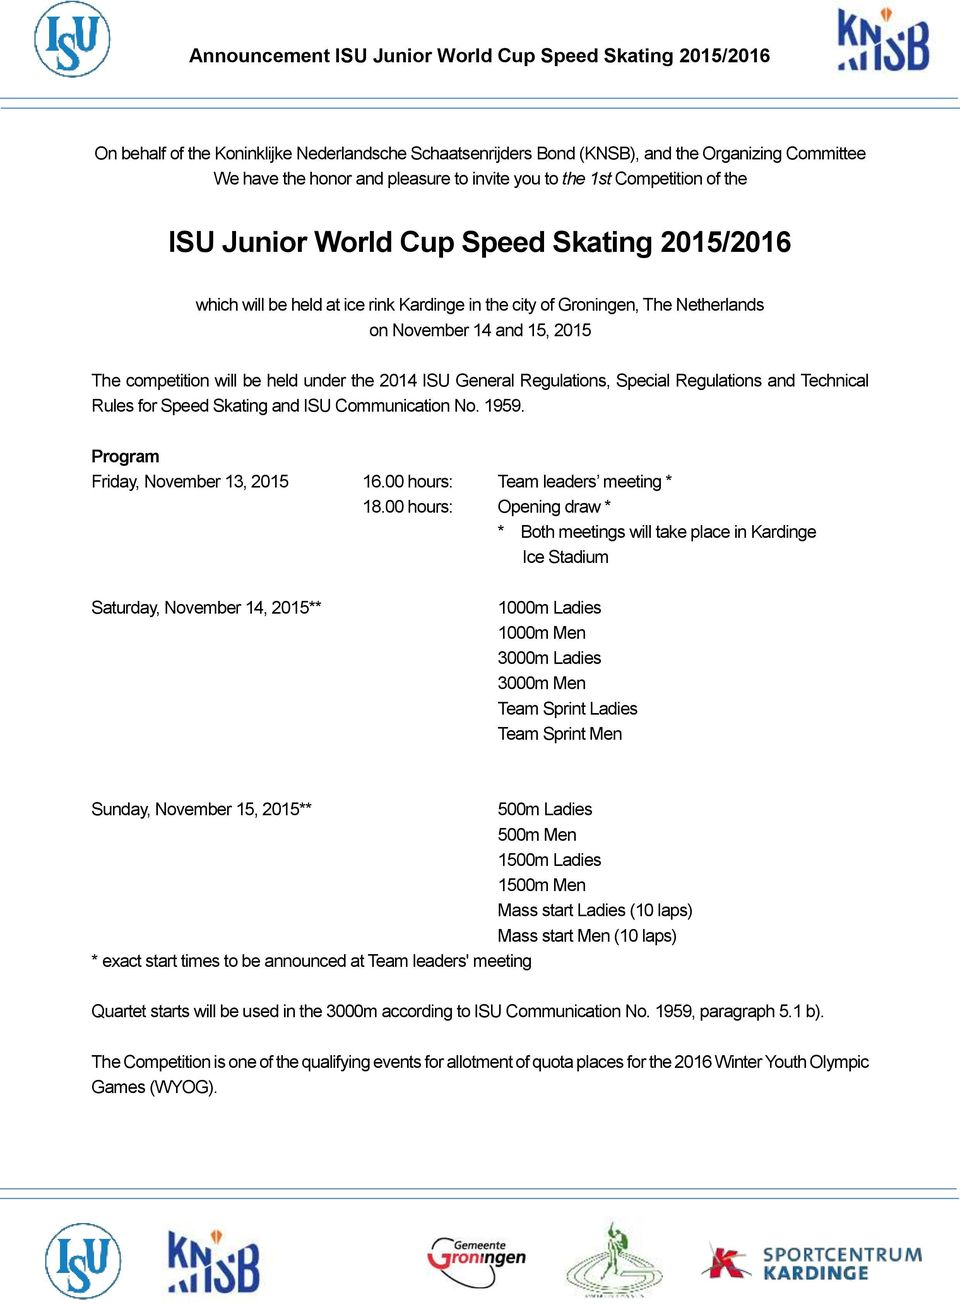 Regulations, Special Regulations and Technical Rules for Speed Skating and ISU Communication No. 1959. Program Friday, November 13, 2015 16.00 hours: Team leaders meeting * 18.